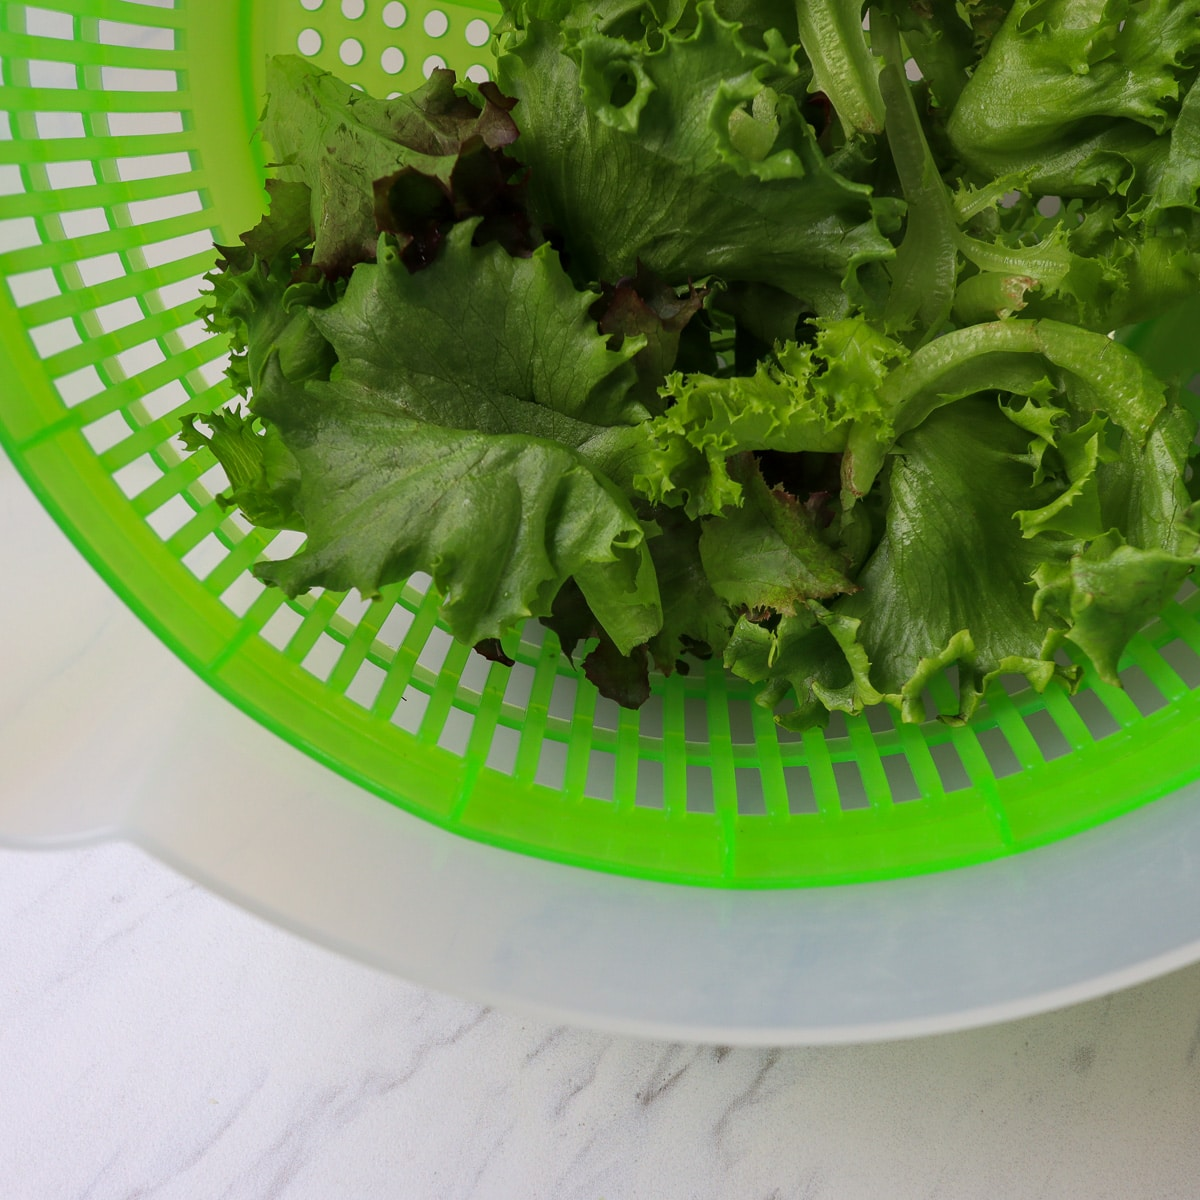 salad just washed in a spinner